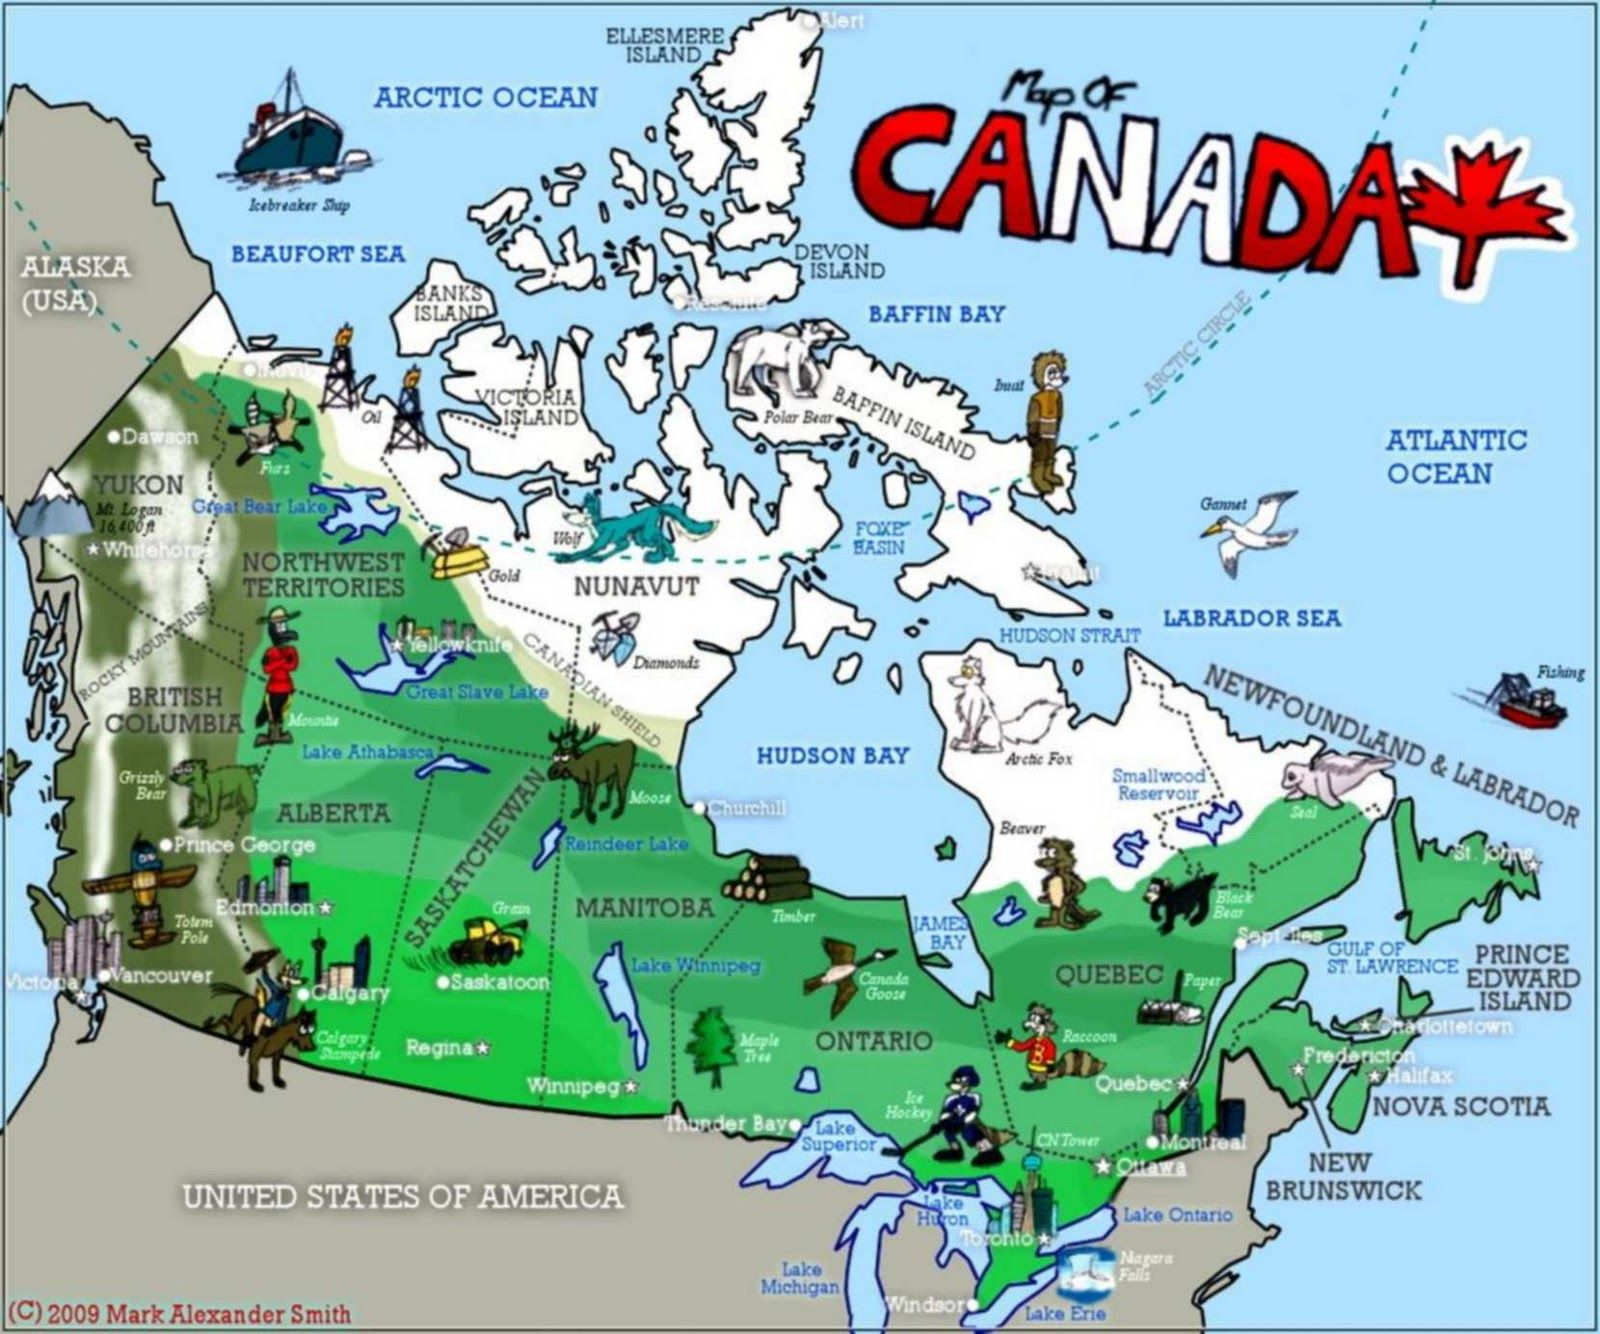 Drive Across Canada Updatedid A West Coast Trip To AB And BC - Us map of dirt roads from west coast to midwest